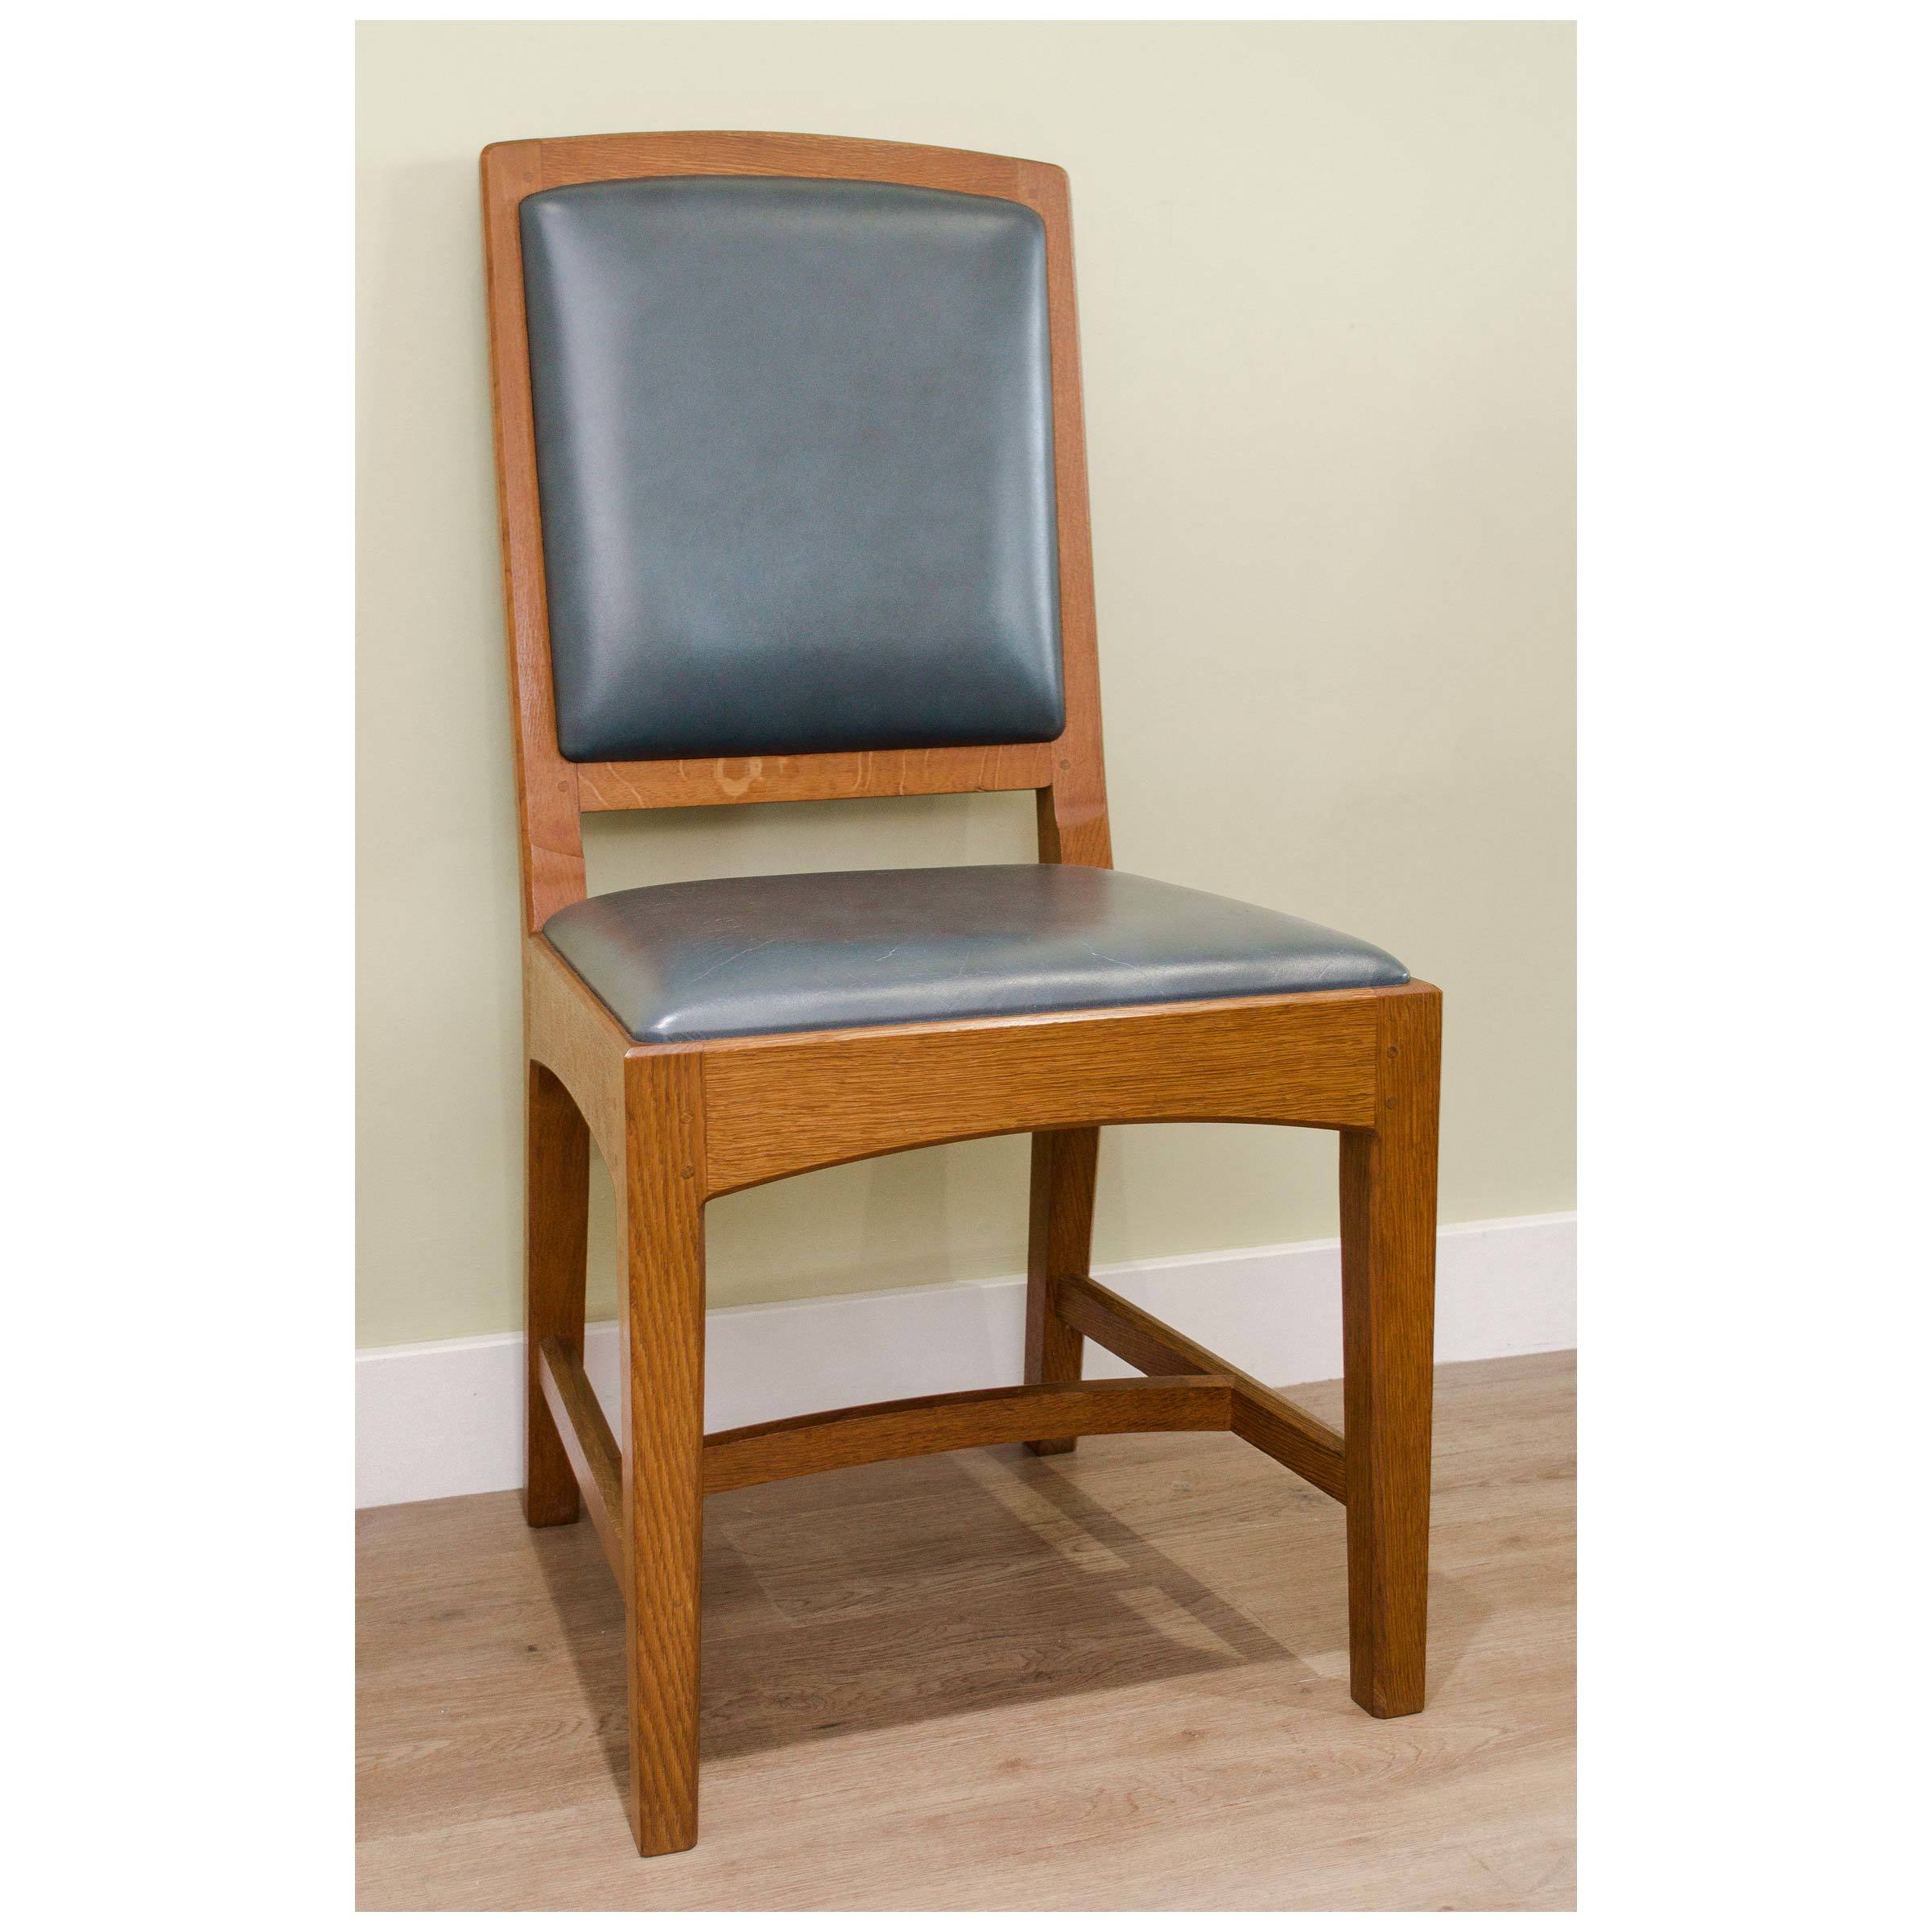 antique-arts-crafts-oak-and-leather-oxford-chair-by-peter-hall-of-staveley-b0020017k.jpg